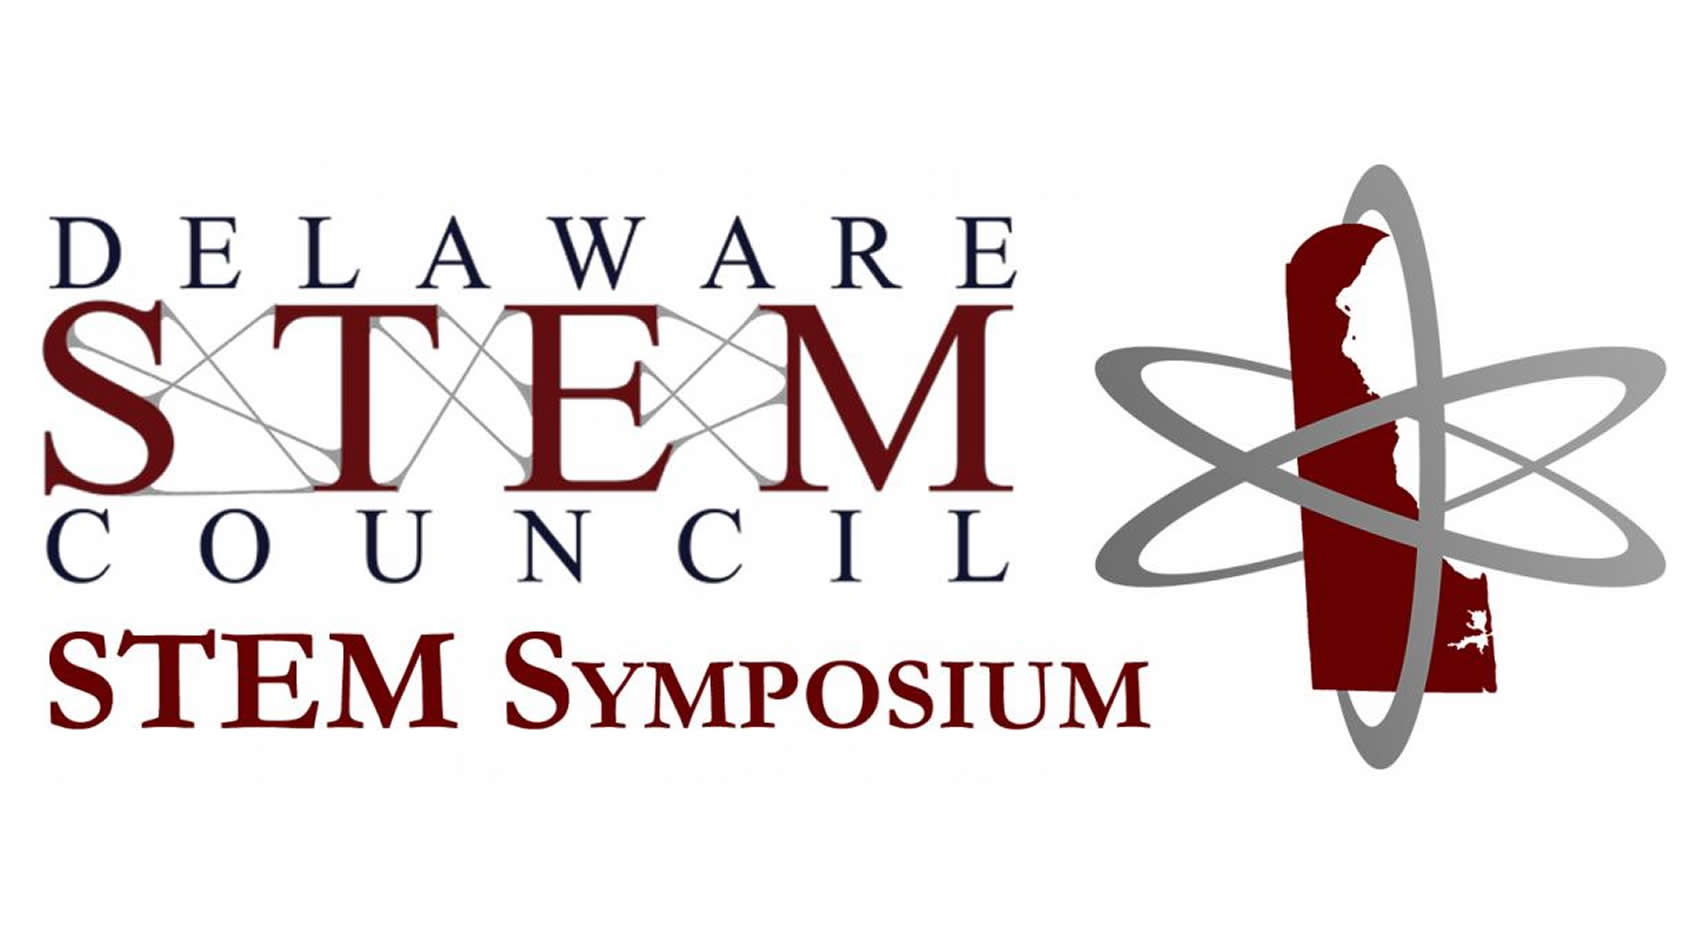 Delaware STEM Council STEM Symposium